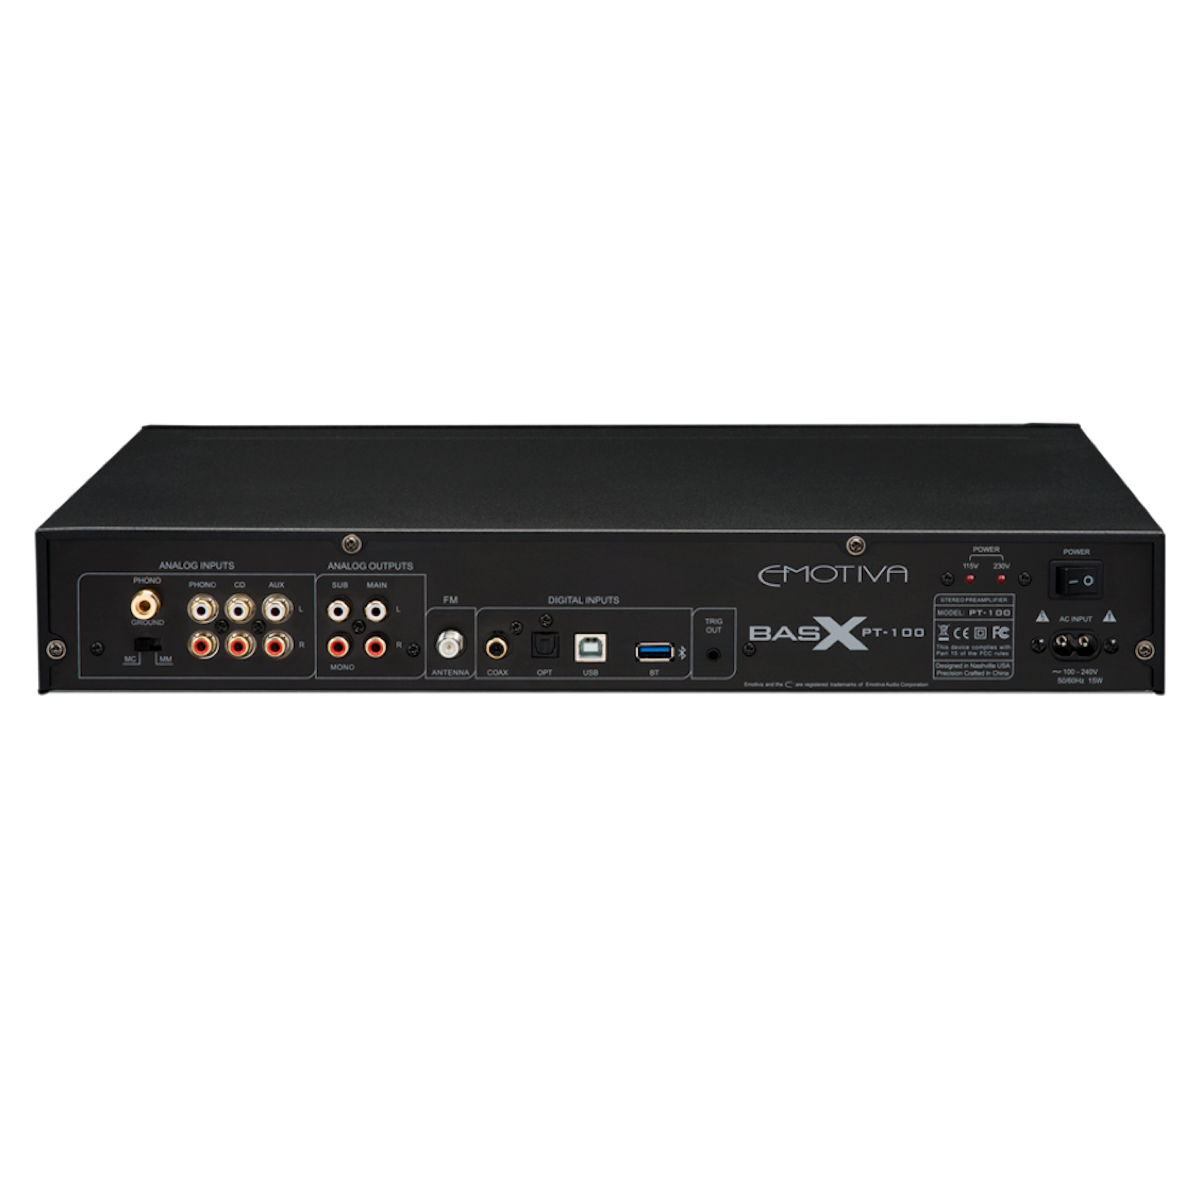 Emotiva PT-100 - Stereo Pre-Amplifier/DAC/Tuner, Emotiva, Integrated Amplifier - AVStore.in